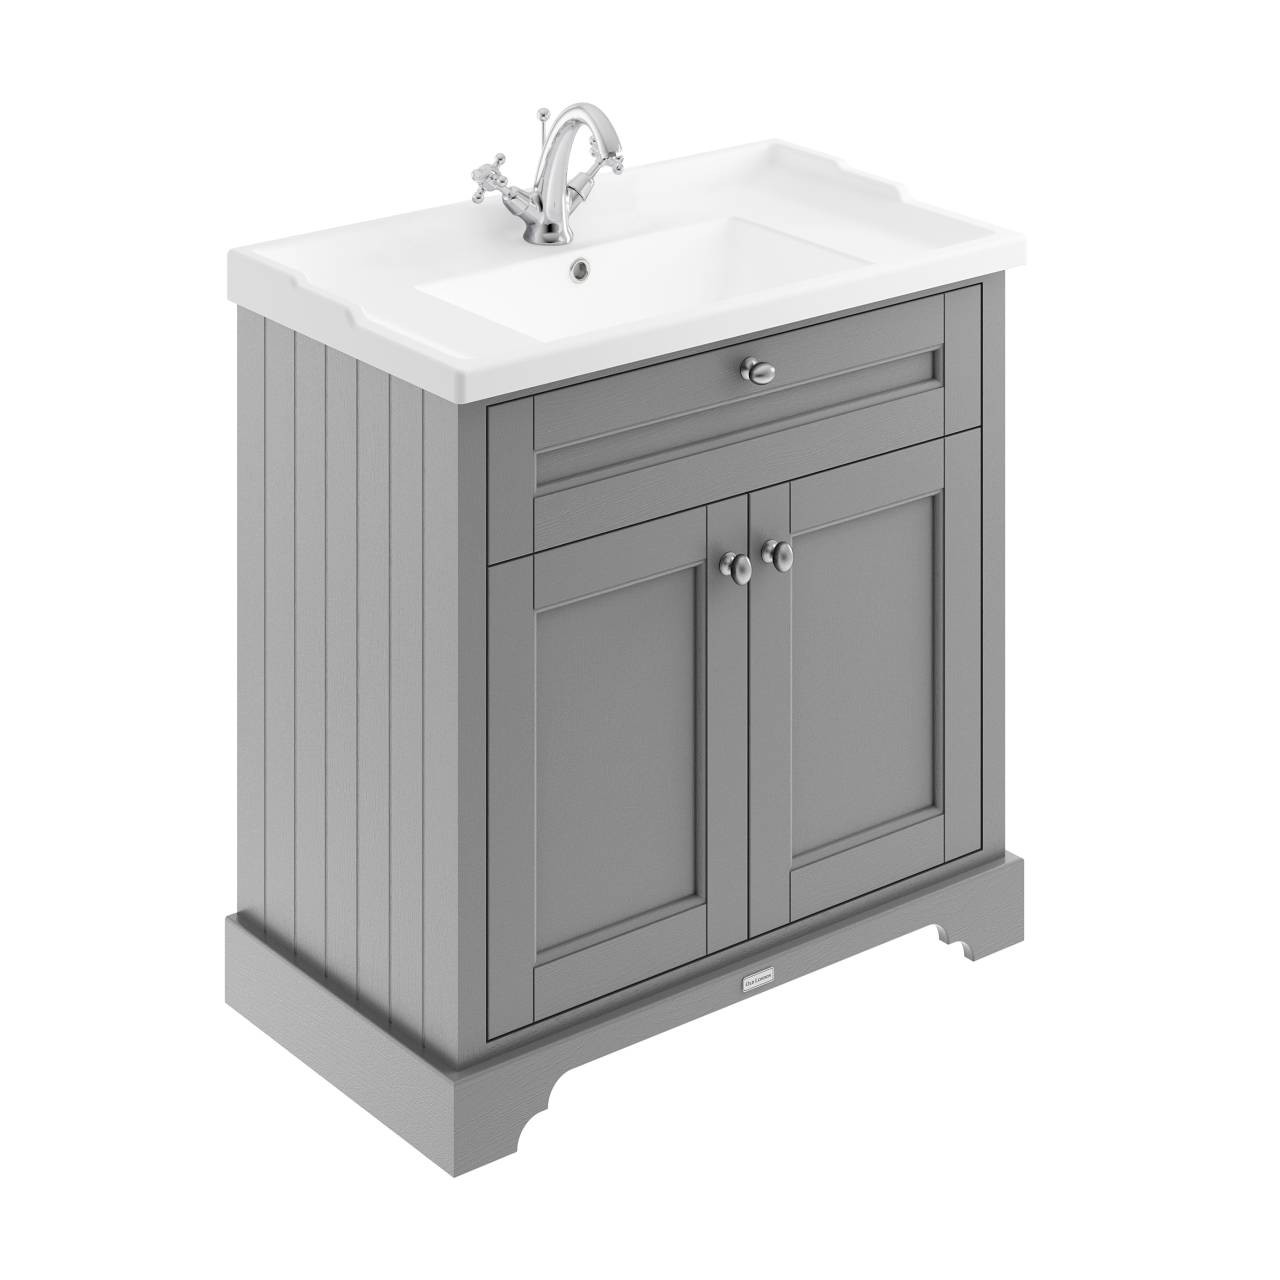 Old London Storm Grey 800mm 2 Door Vanity Unit and Basin with 1 Tap Hole - LOF205